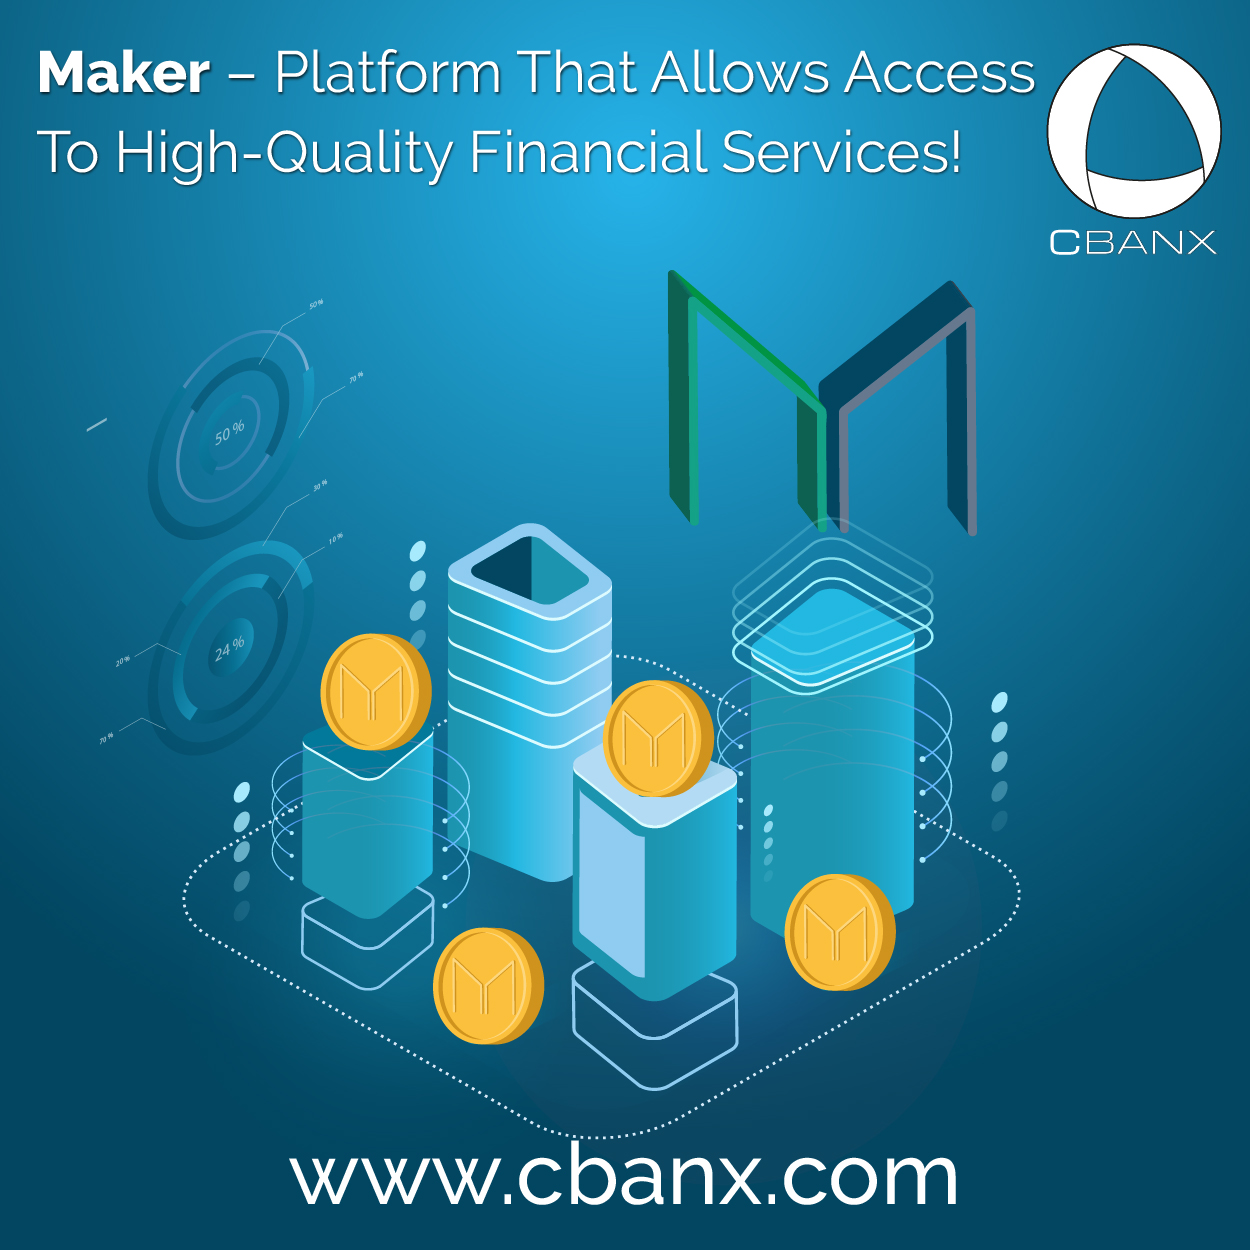 Maker – Platform That Allows Access To High-Quality Financial Services!